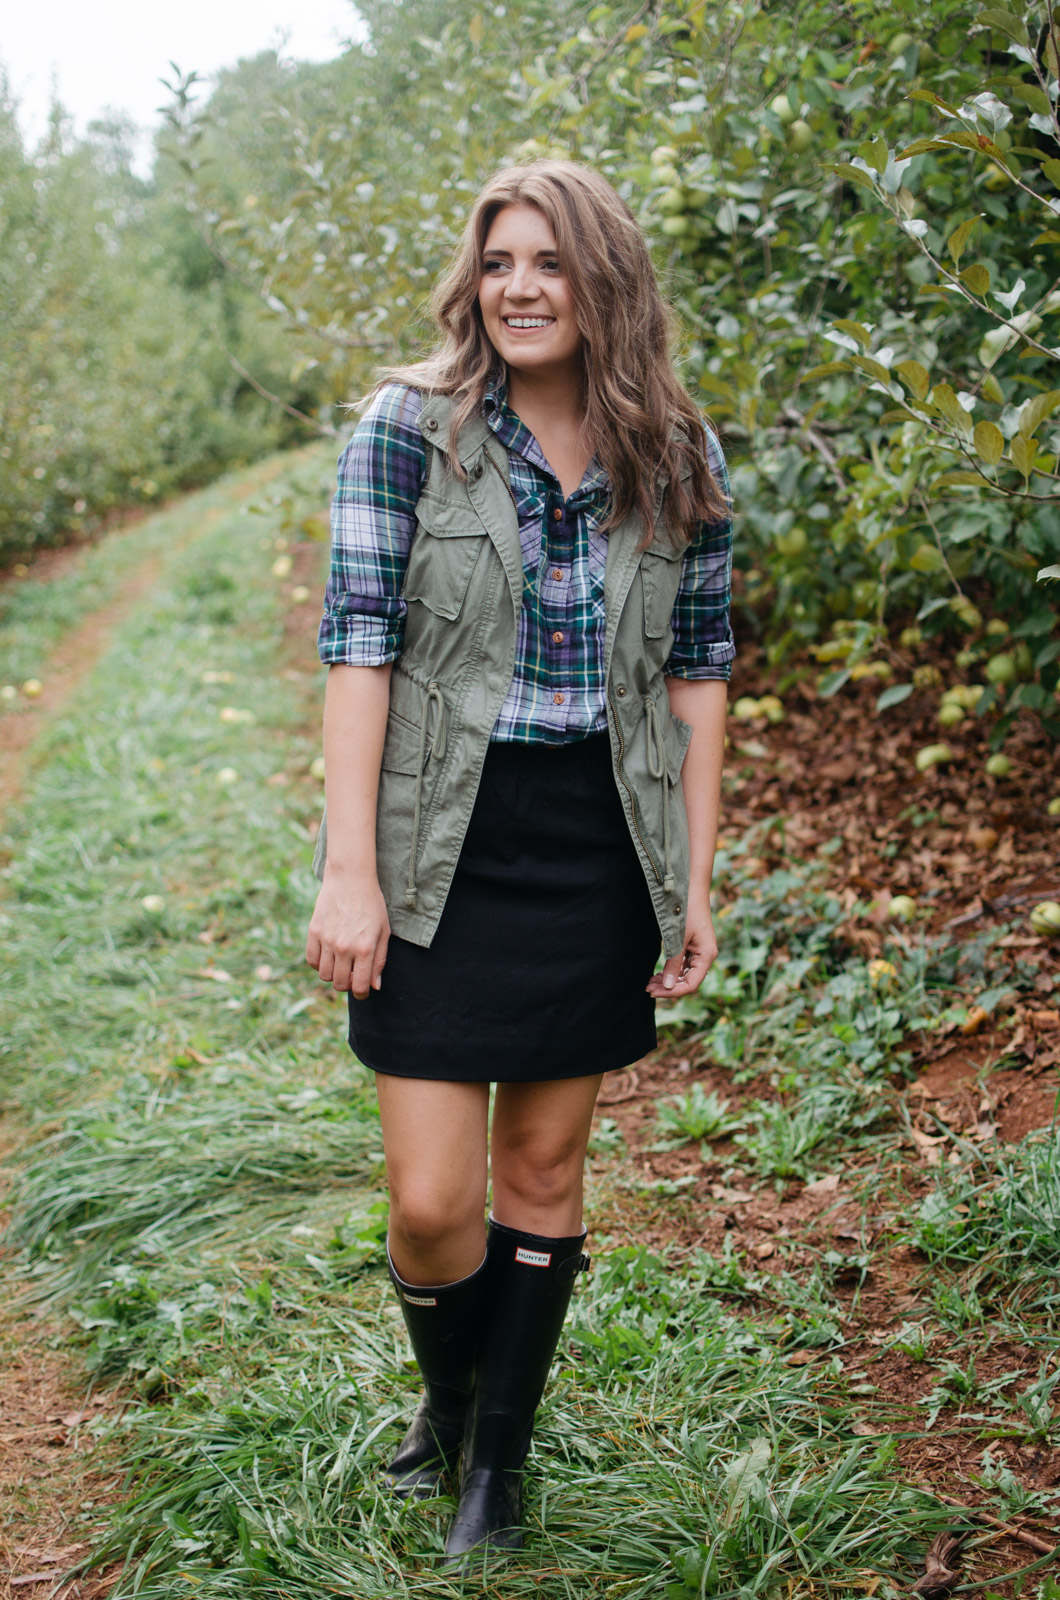 cute apple picking outfit - fall outfit hunter boots | For more Fall outfit ideas, head to bylaurenm.com!